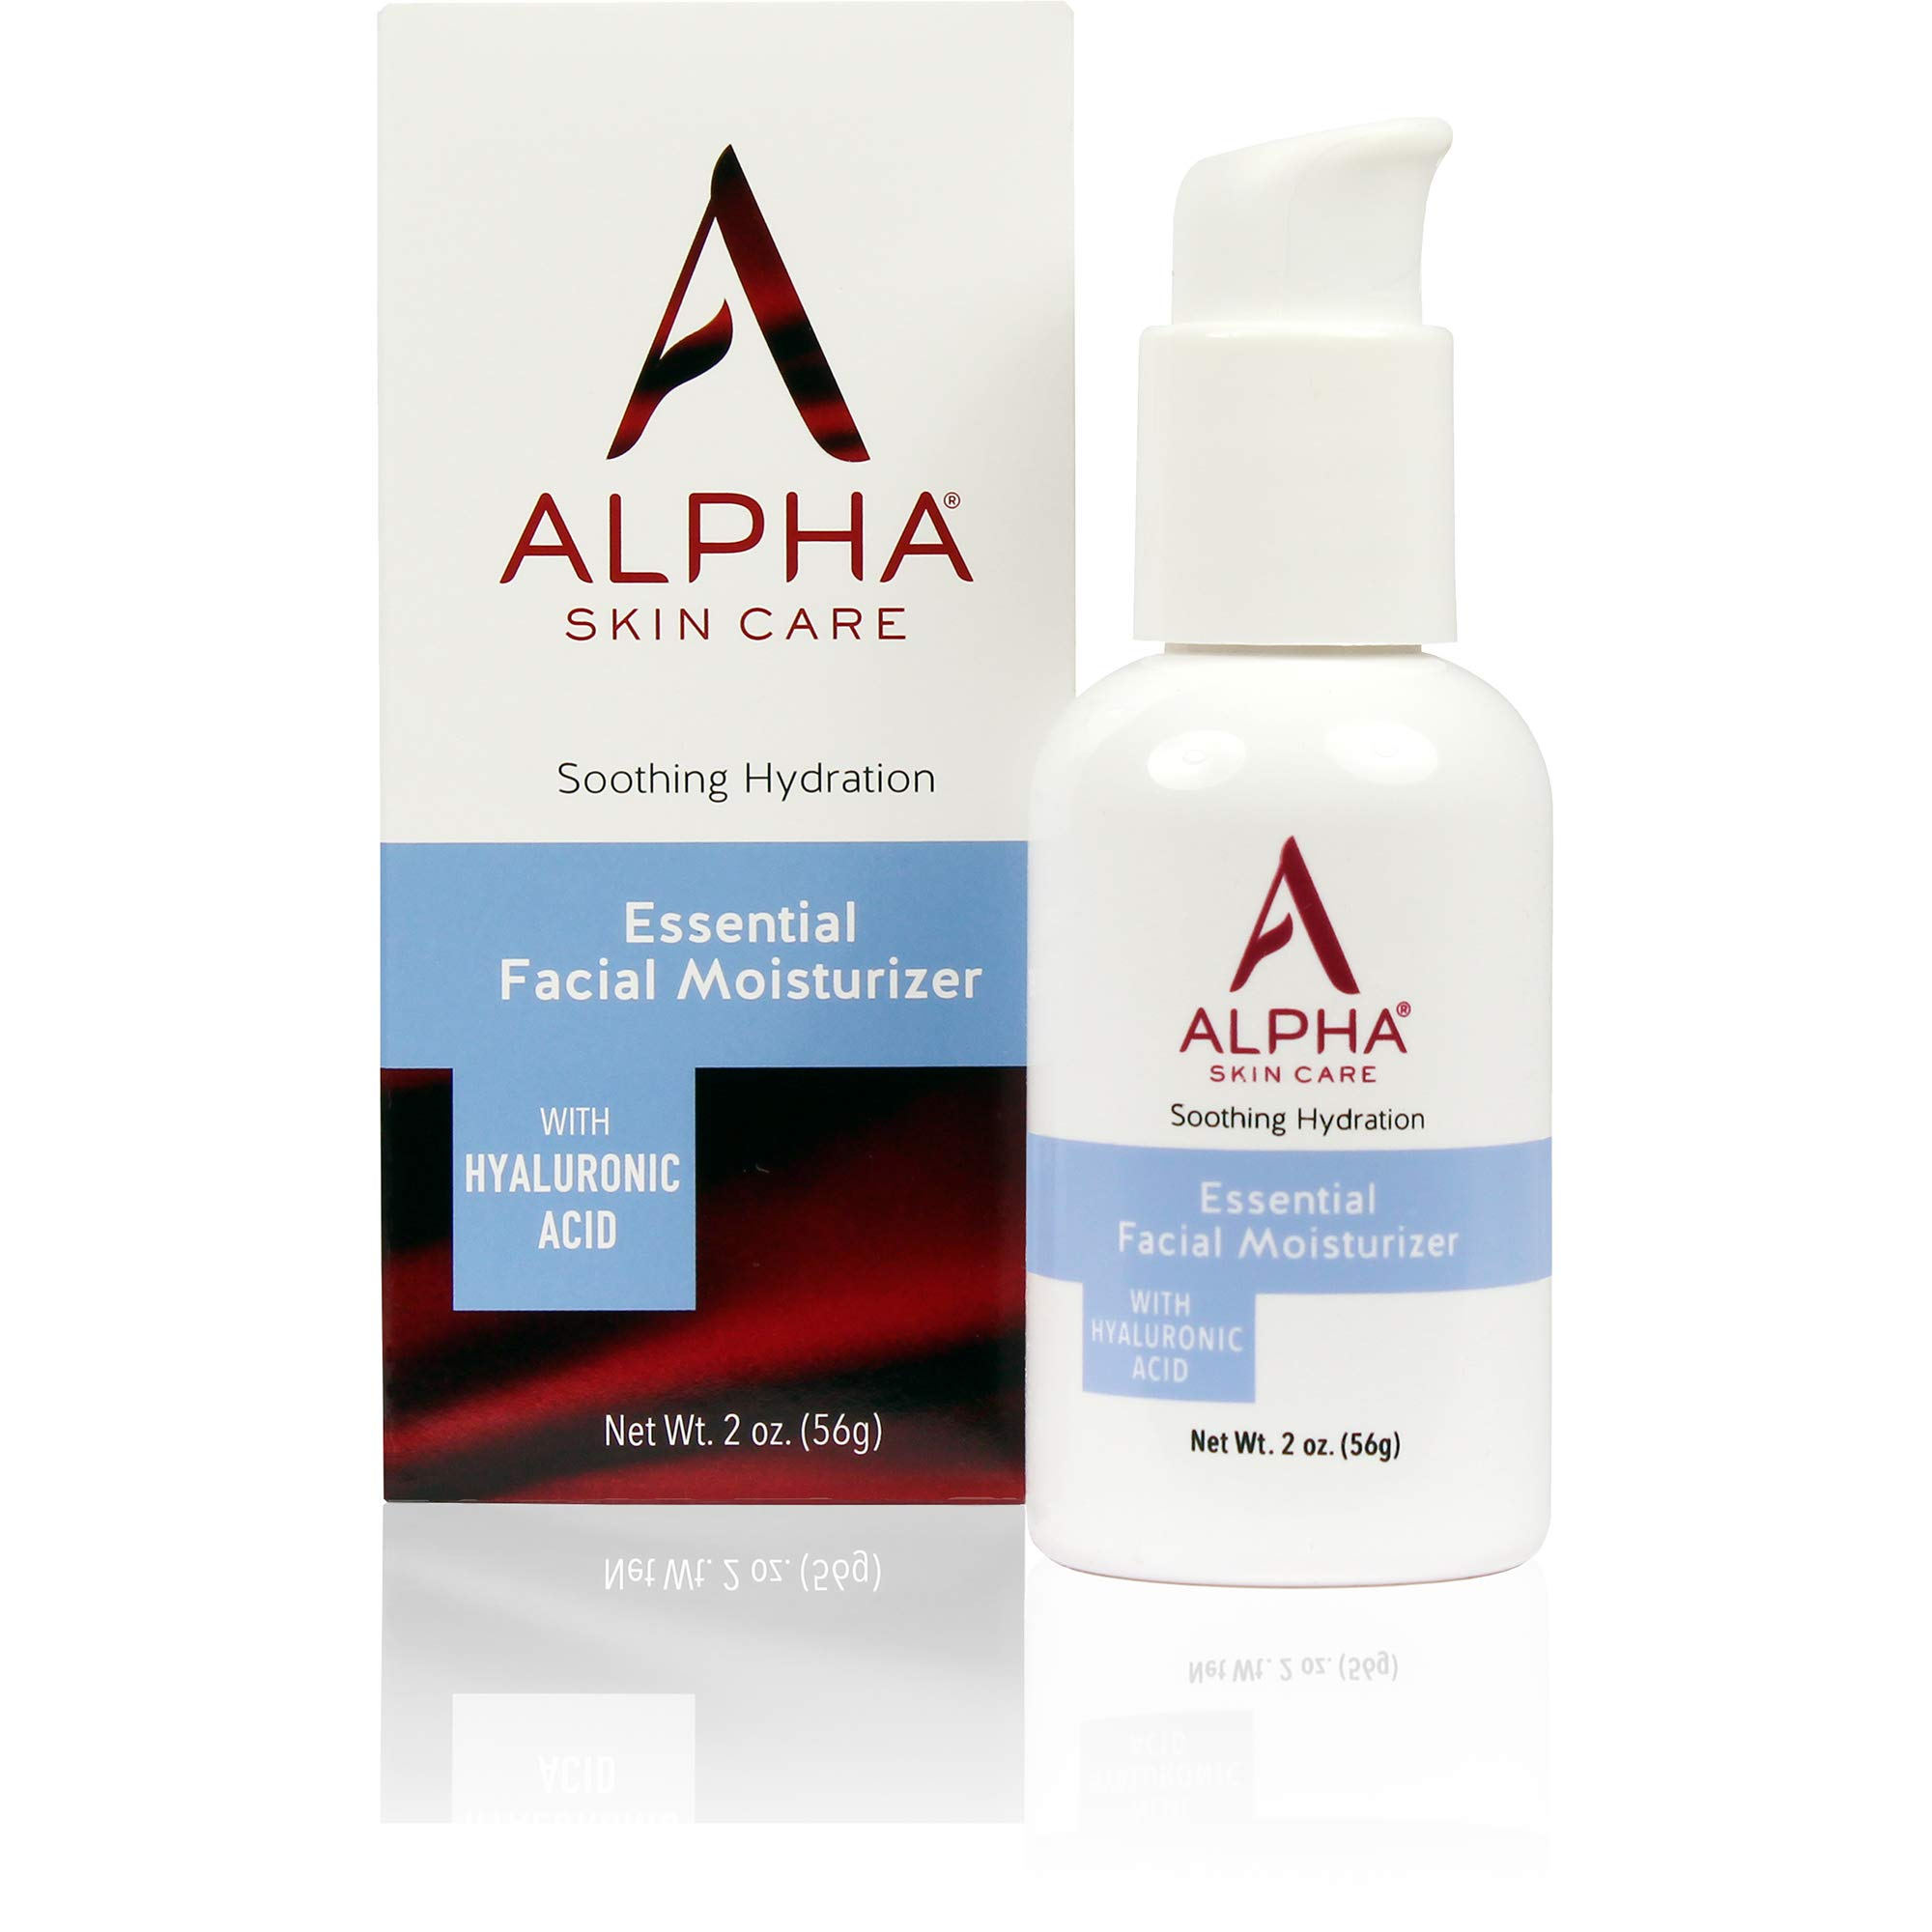 Alpha Skin Care Essential Facial Moisturizer with Hyaluronic Acid | Soothing Hydration | Reduces the Appearance of Lines & Wrinkles | For Normal to Dry Skin | 2 Oz